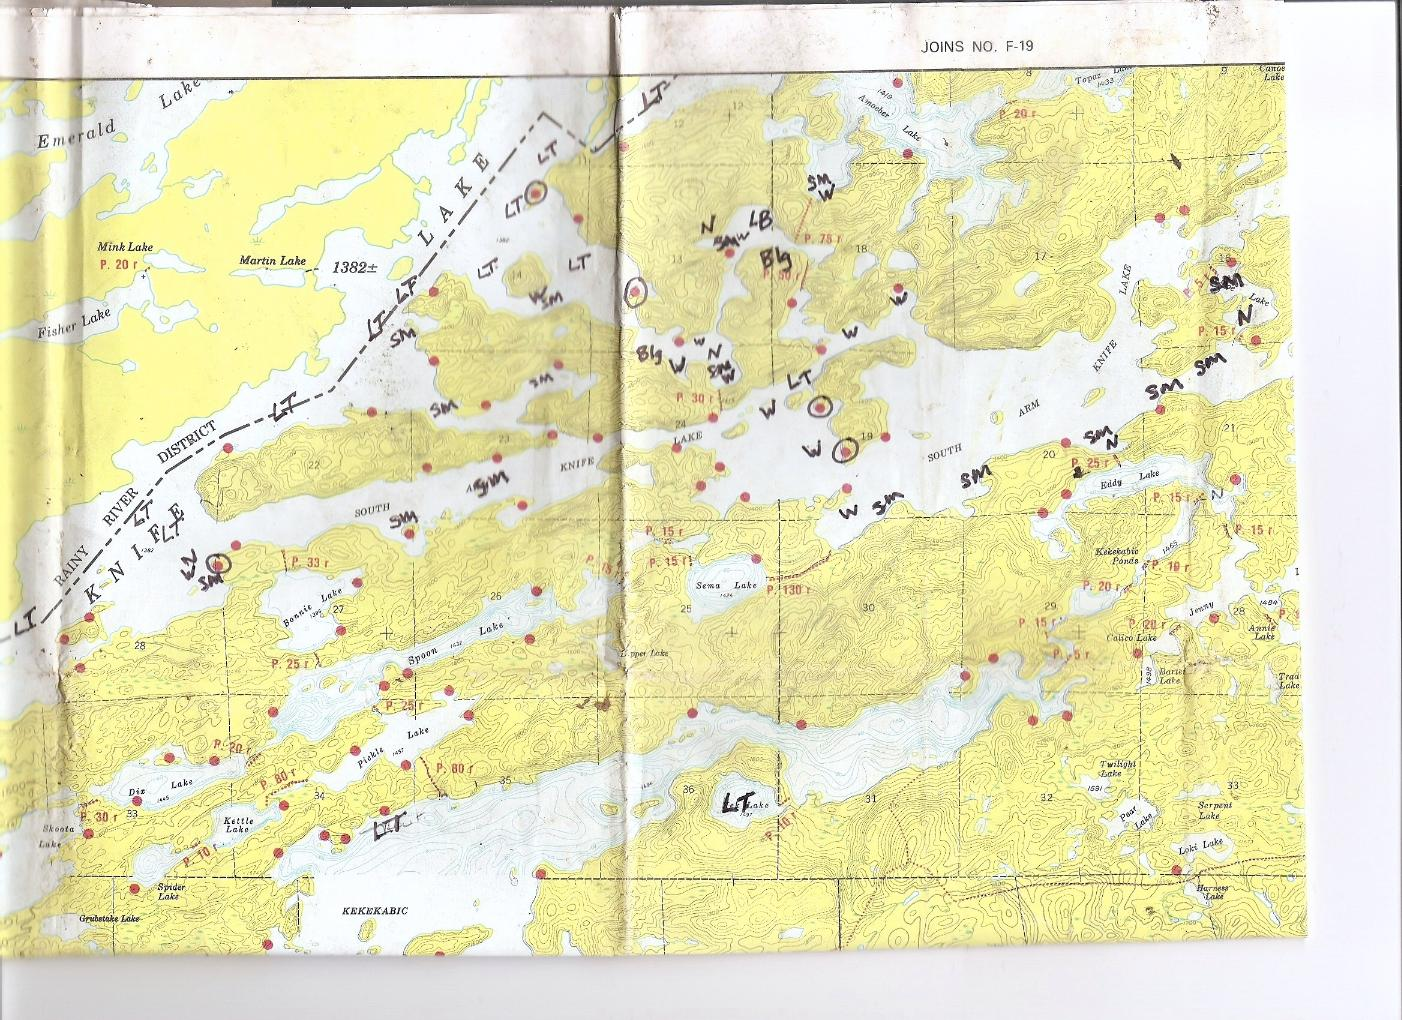 BWCA Lake trout in Knife lake Boundary Waters ... Map Of Bwca Lakes on map of mn lakes, map of ely lakes, map of minnesota lakes, map of eastern united states lakes, map of gunflint trail lakes,